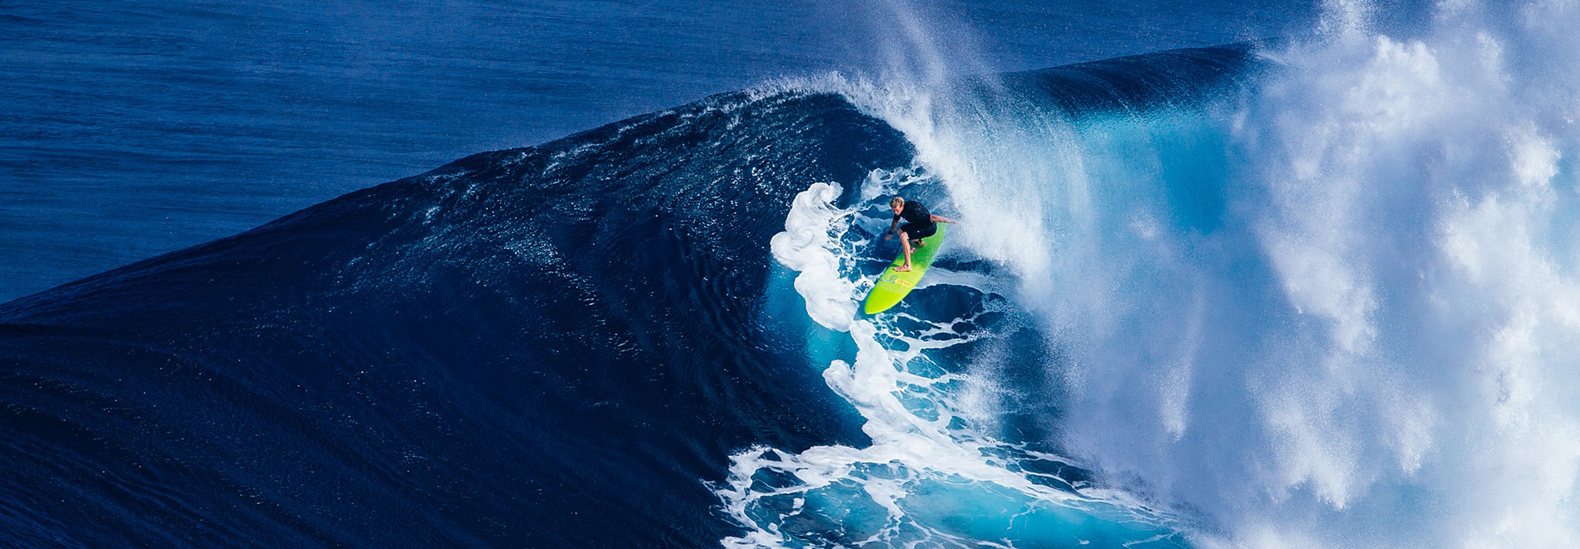 Surfing citizen scientists collect important ocean data